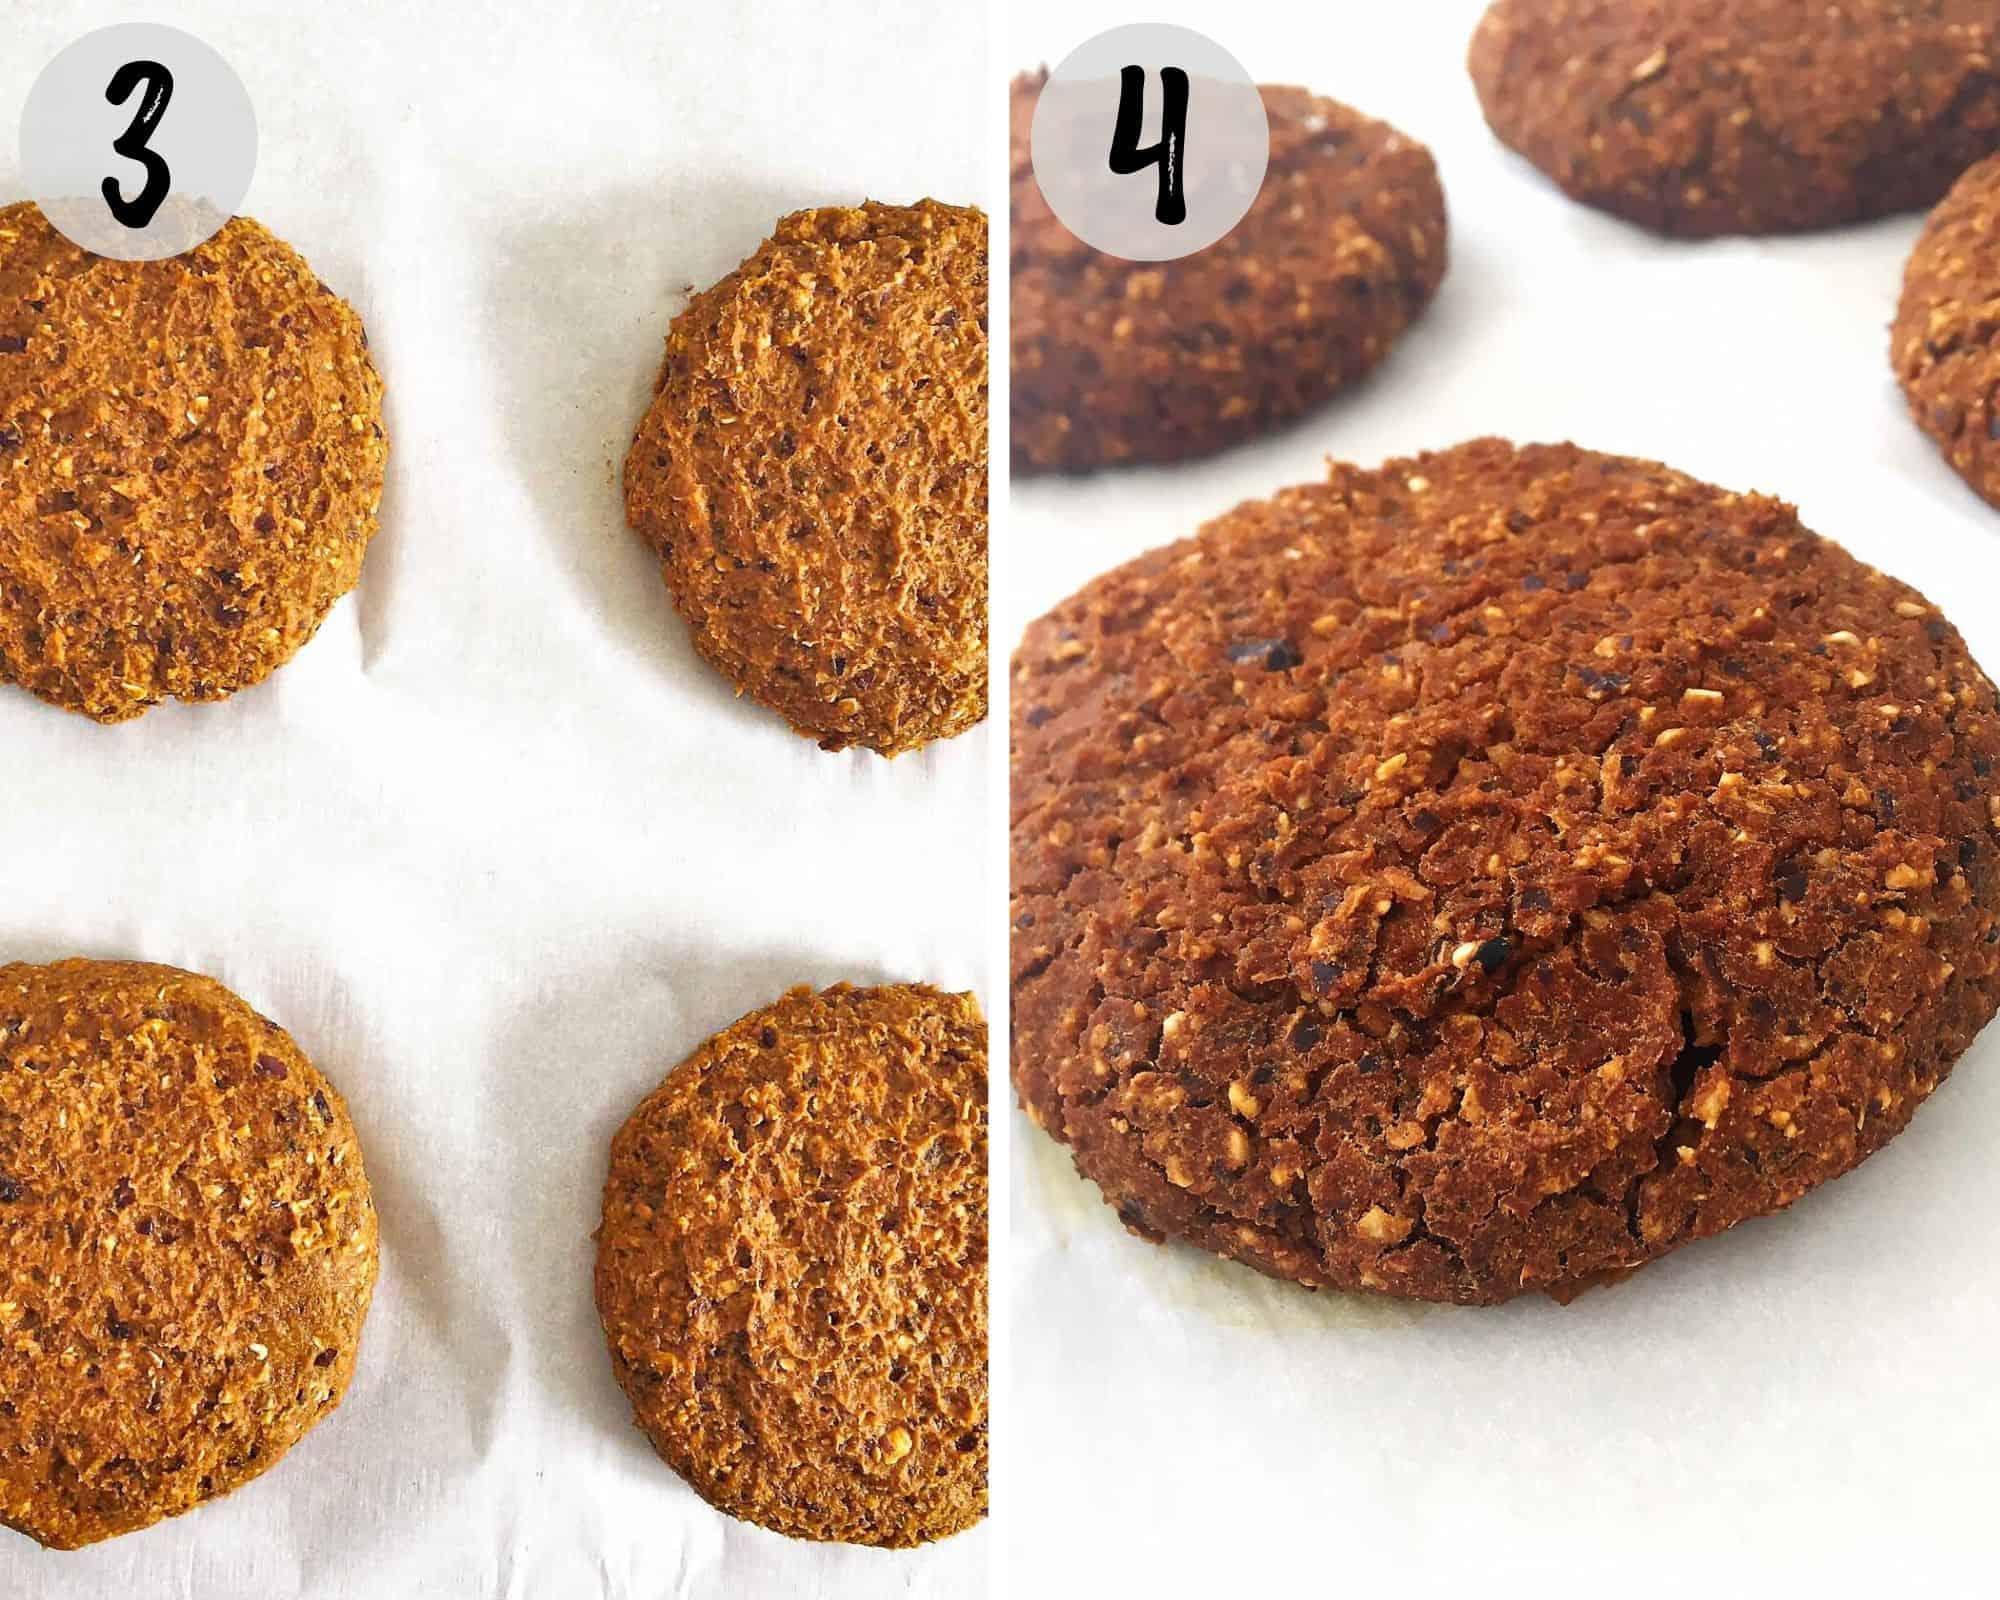 veggie patties on baking tray before and after cooking